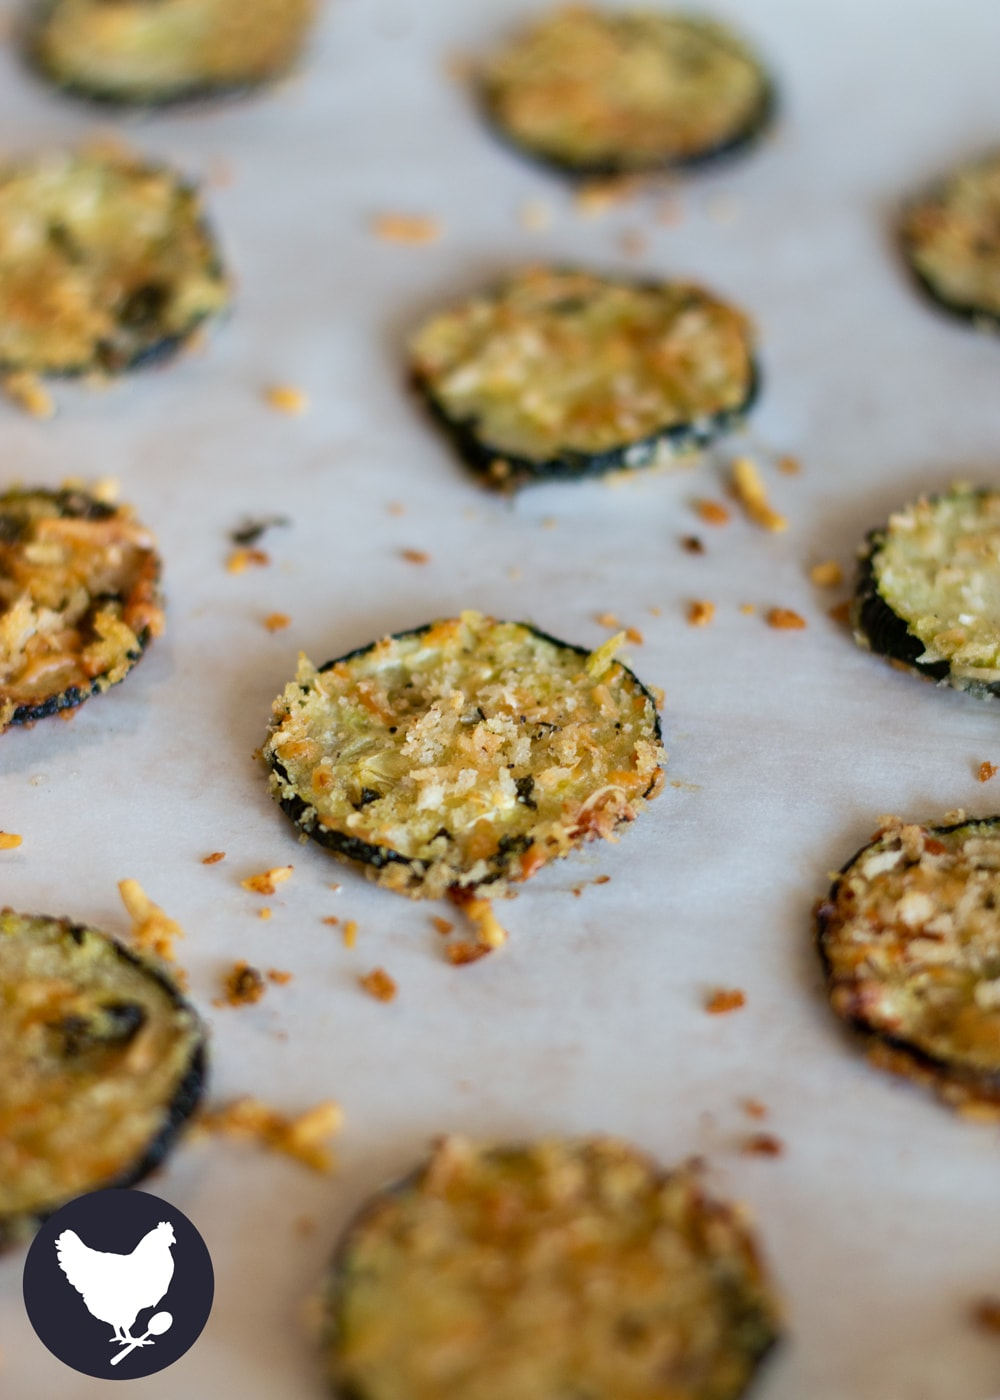 Zucchini Chips are simple to make and oh so good! You can serve these as a side dish, a healthy appetizer or even as a great snack!